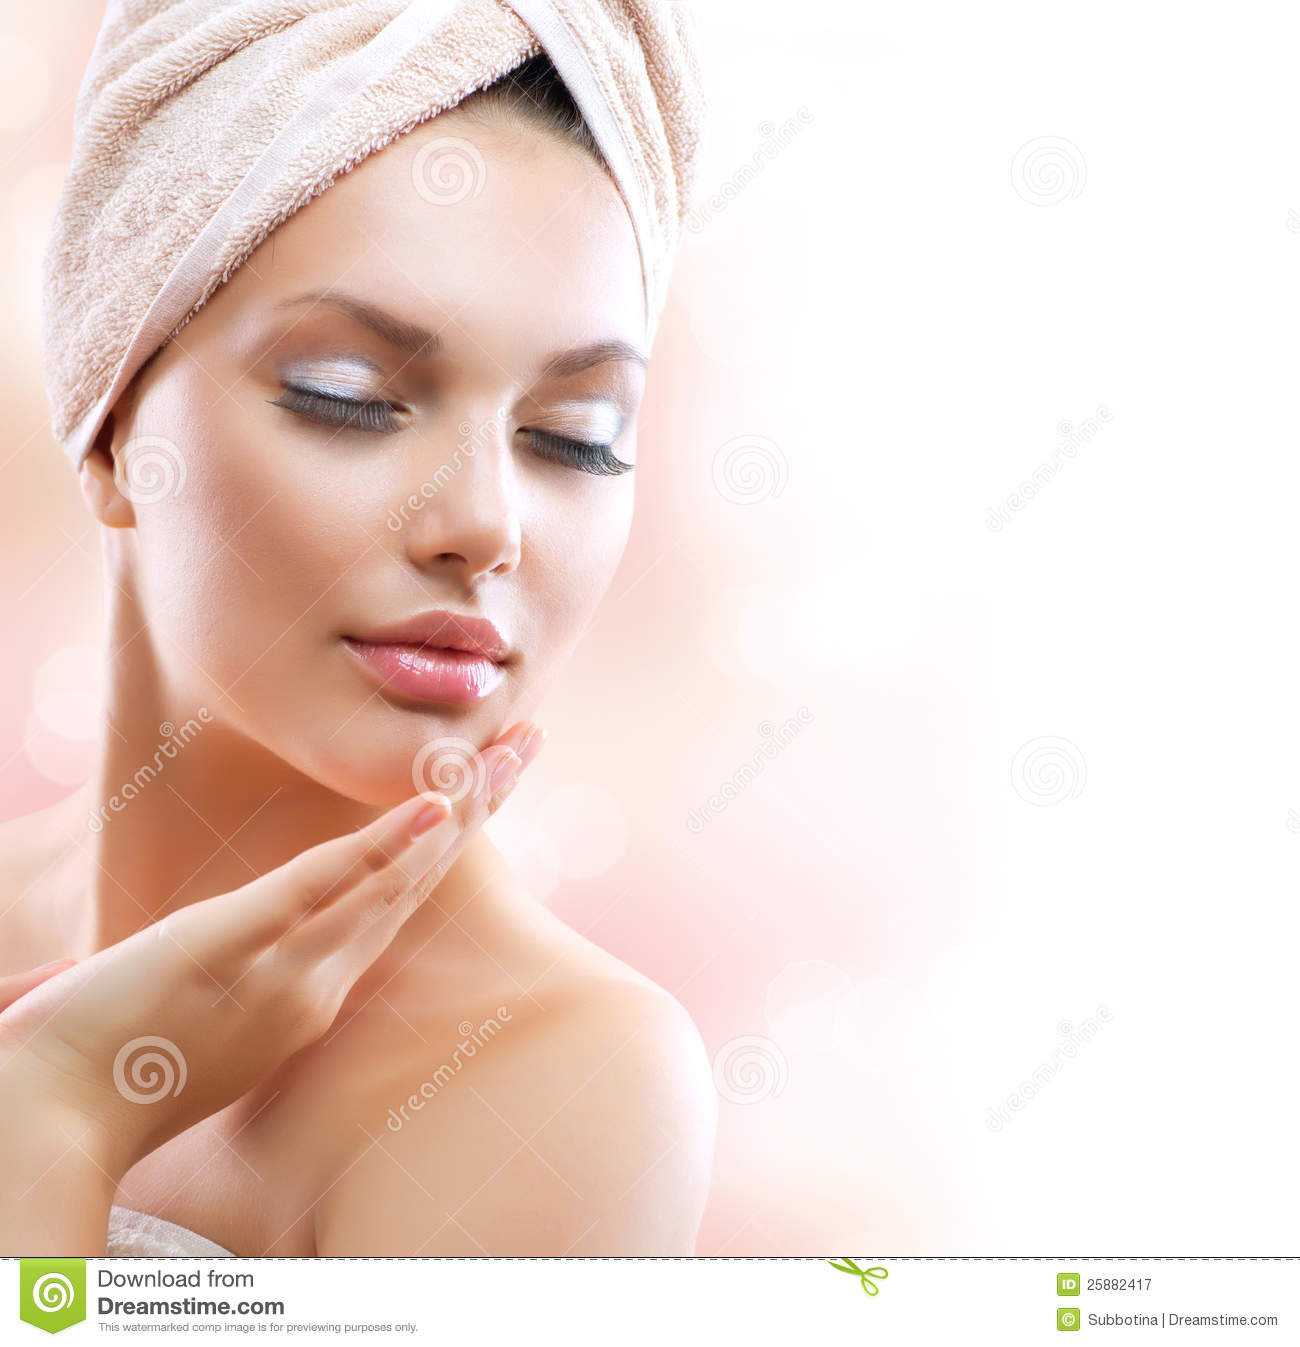 Spa Girl Skincare Stock Image Image Of Apply Bathroom 25882417